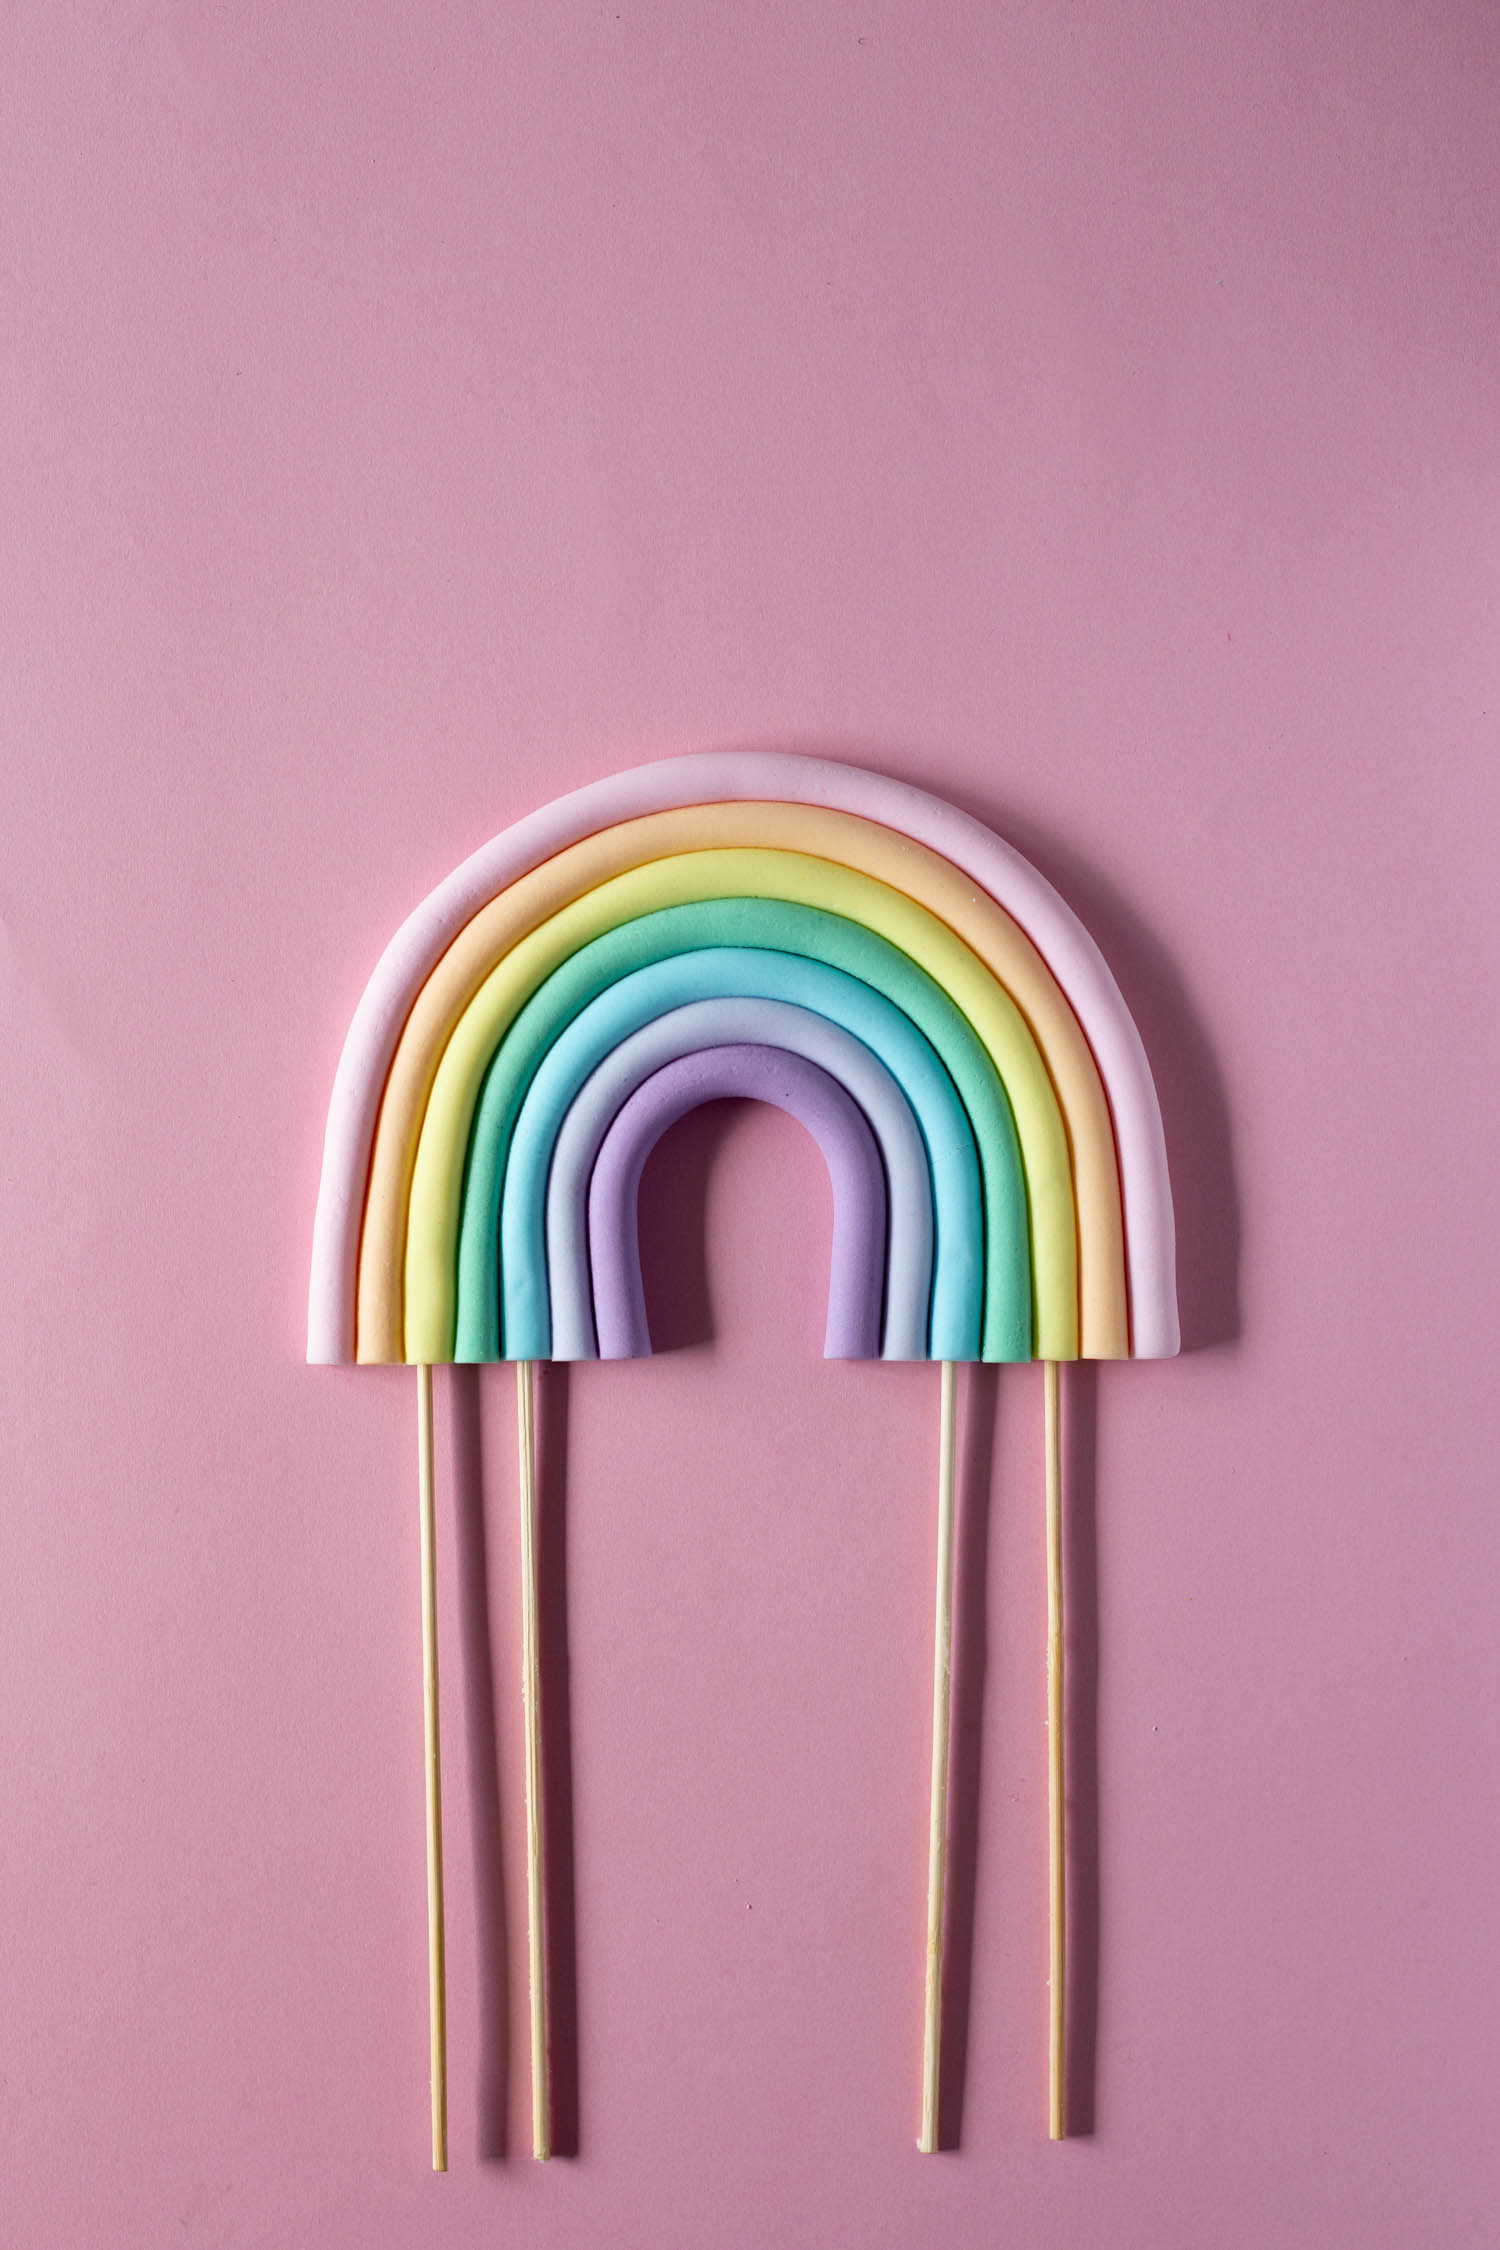 Girly Pastel Rainbow Party Cake Topper - DIY made from Fondant Icing